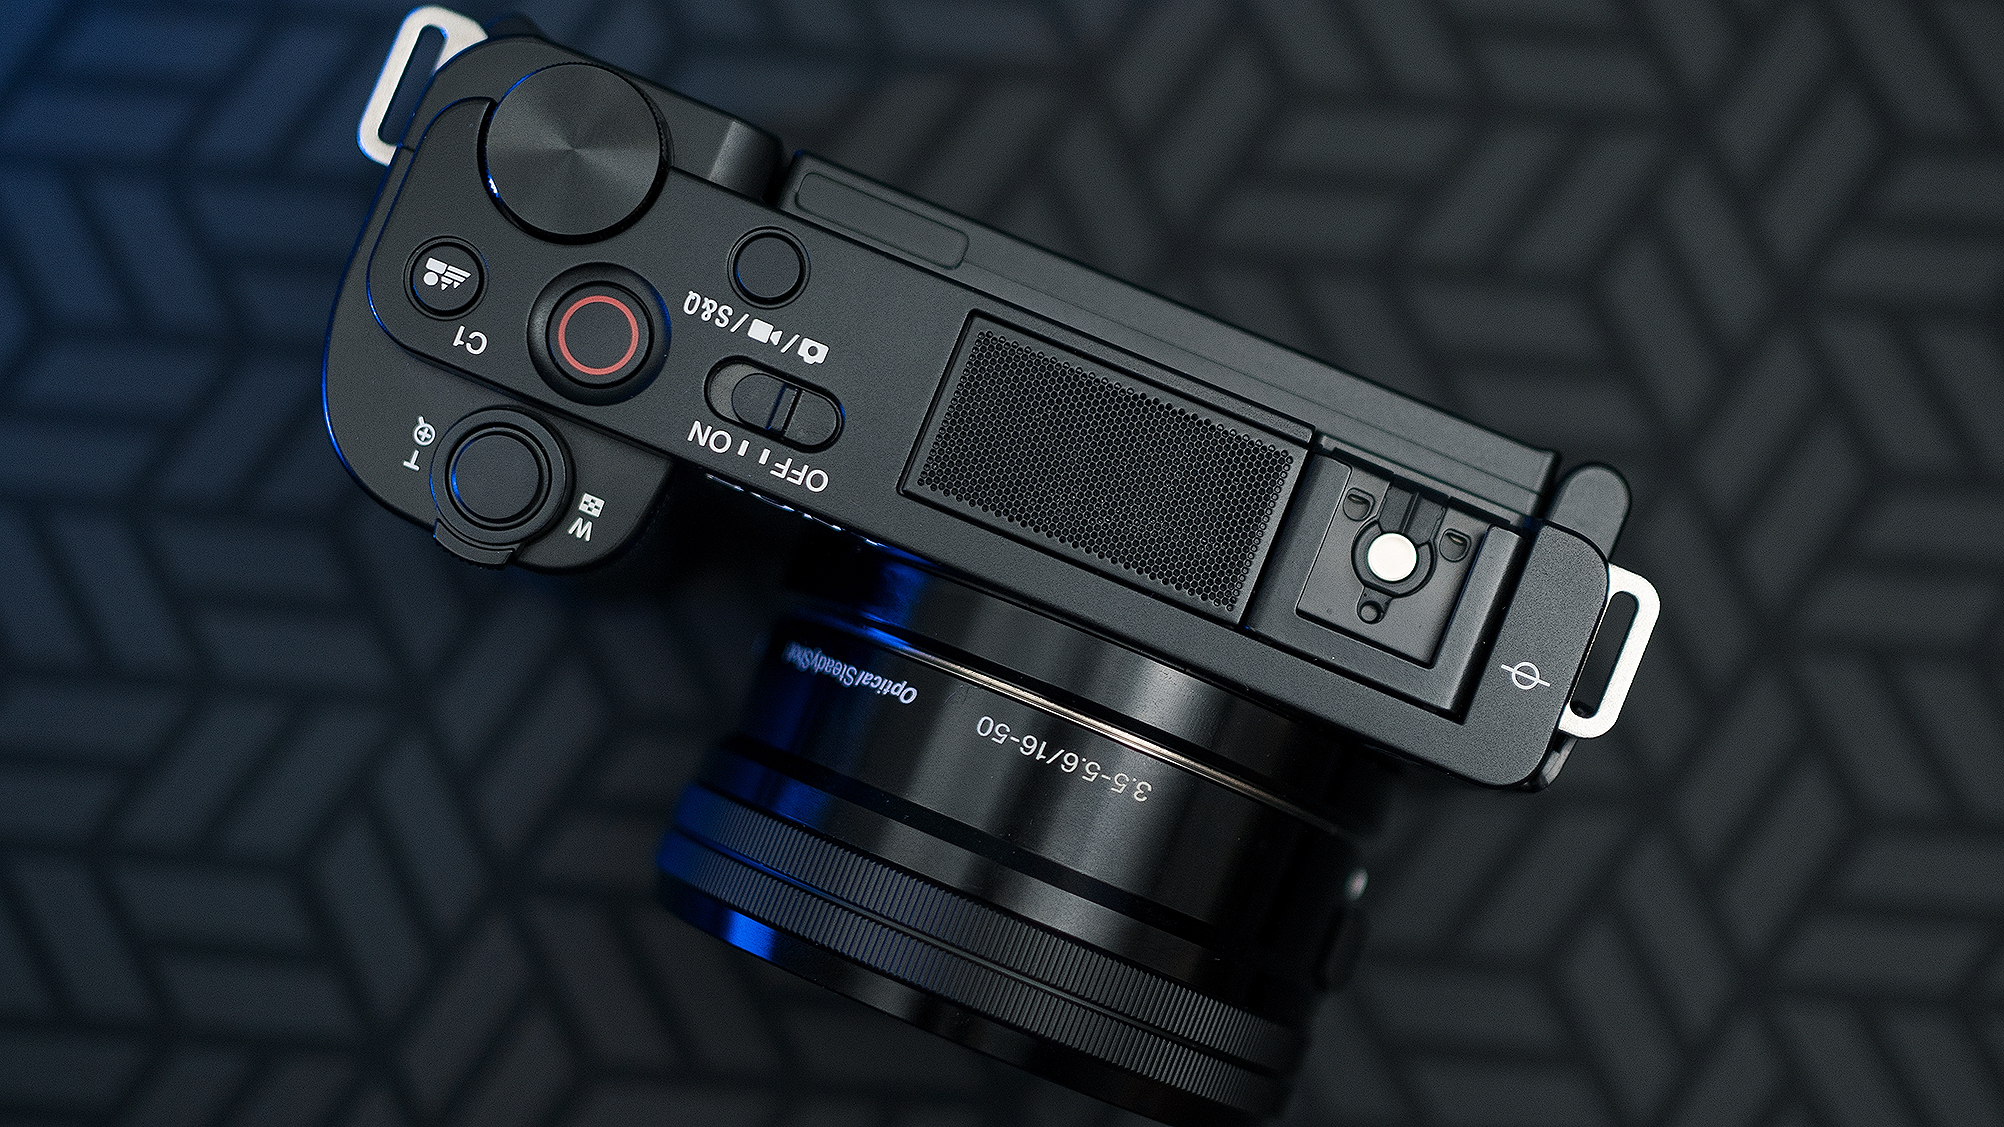 We Review The Sony ZV-E10: What Can It Do and Who Was It Made For? 2